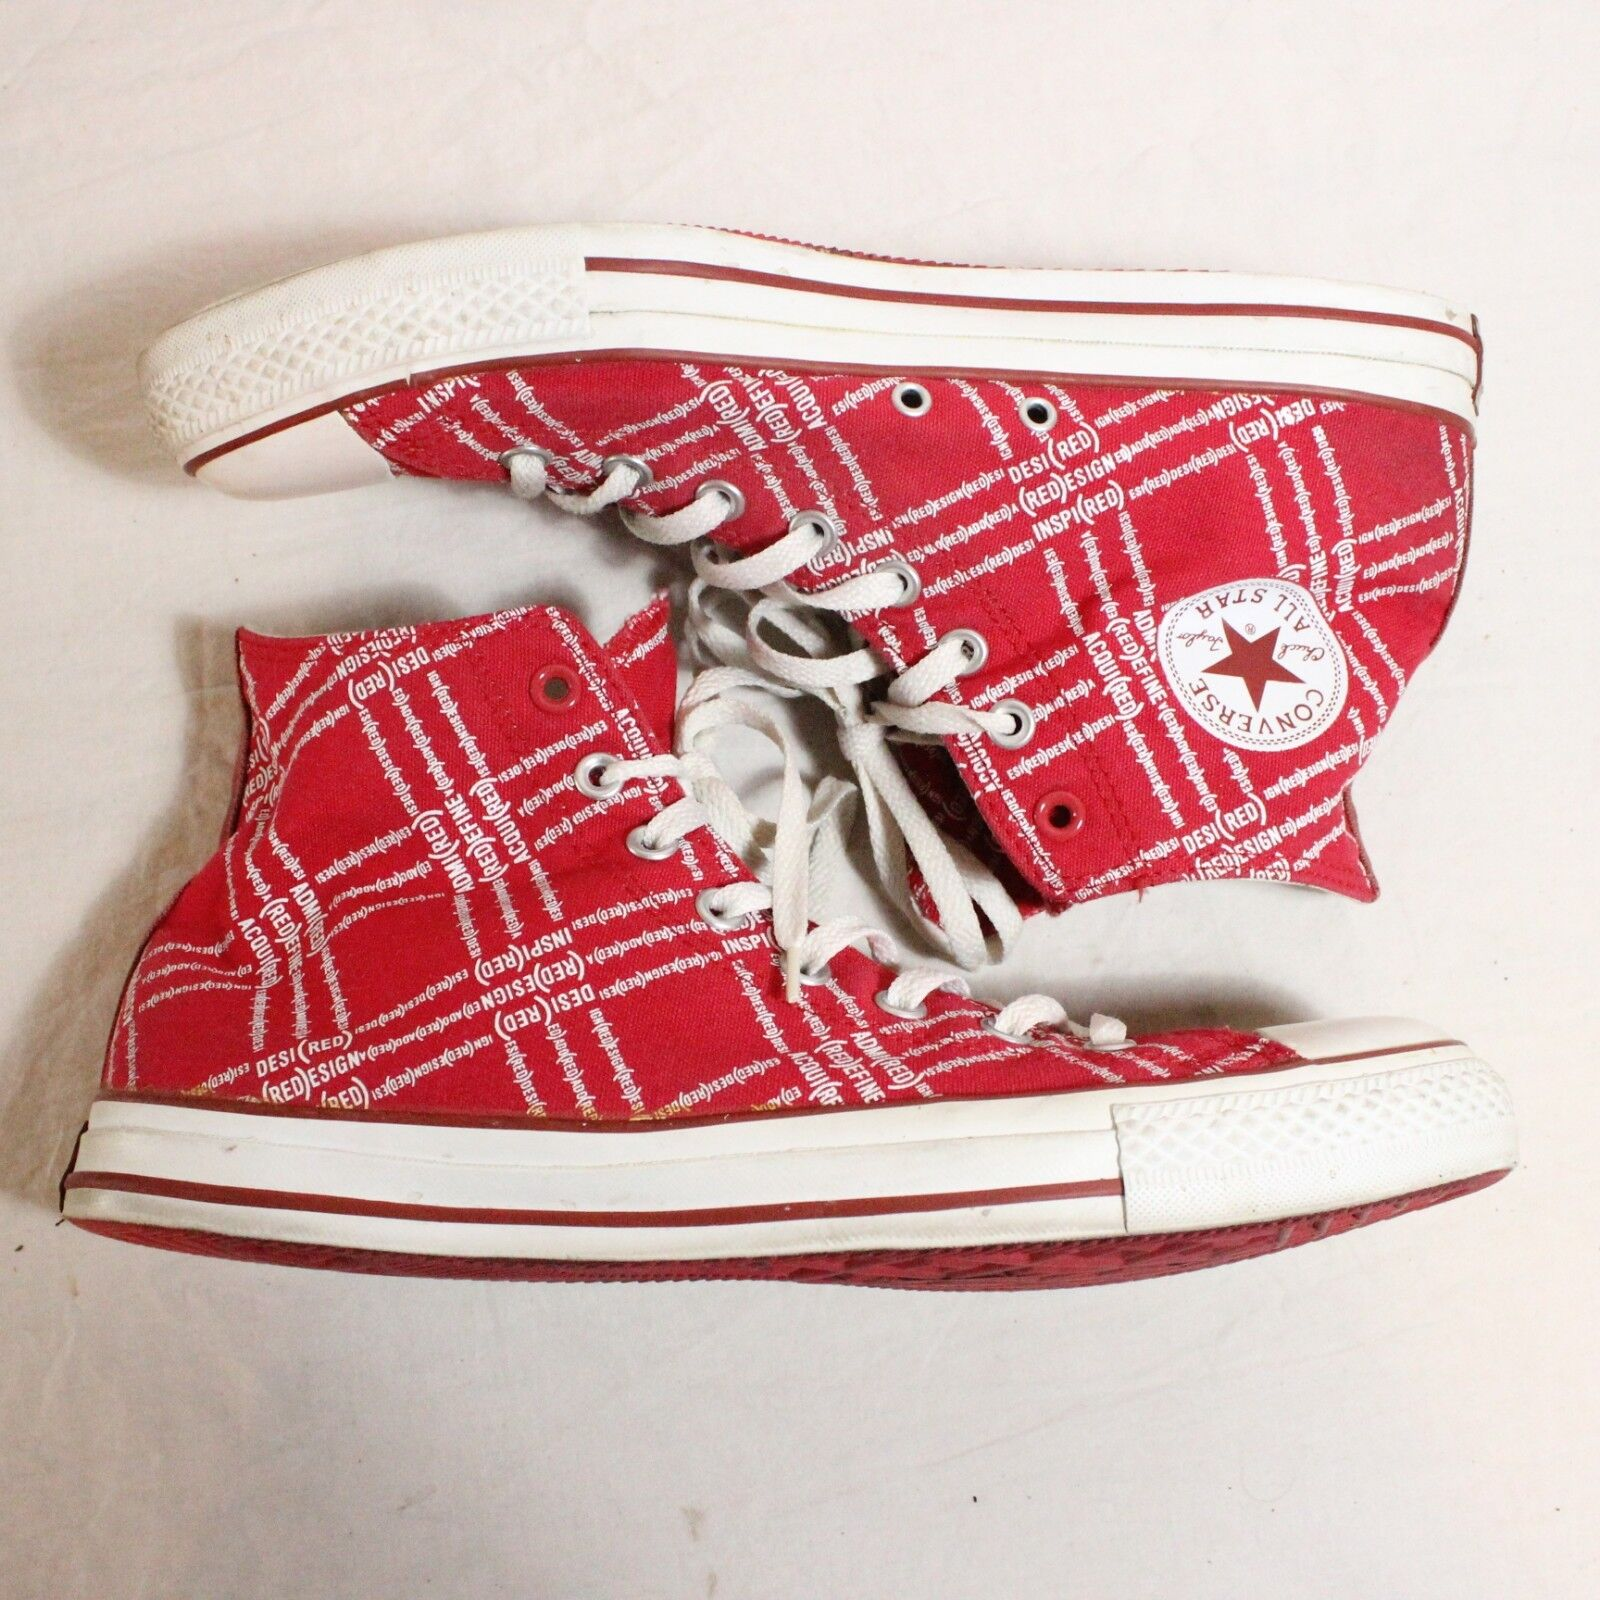 Chuck Taylor Converse alta (Product) Aids Awareness joinred (Product) alta Rojo todo Star 49c81b